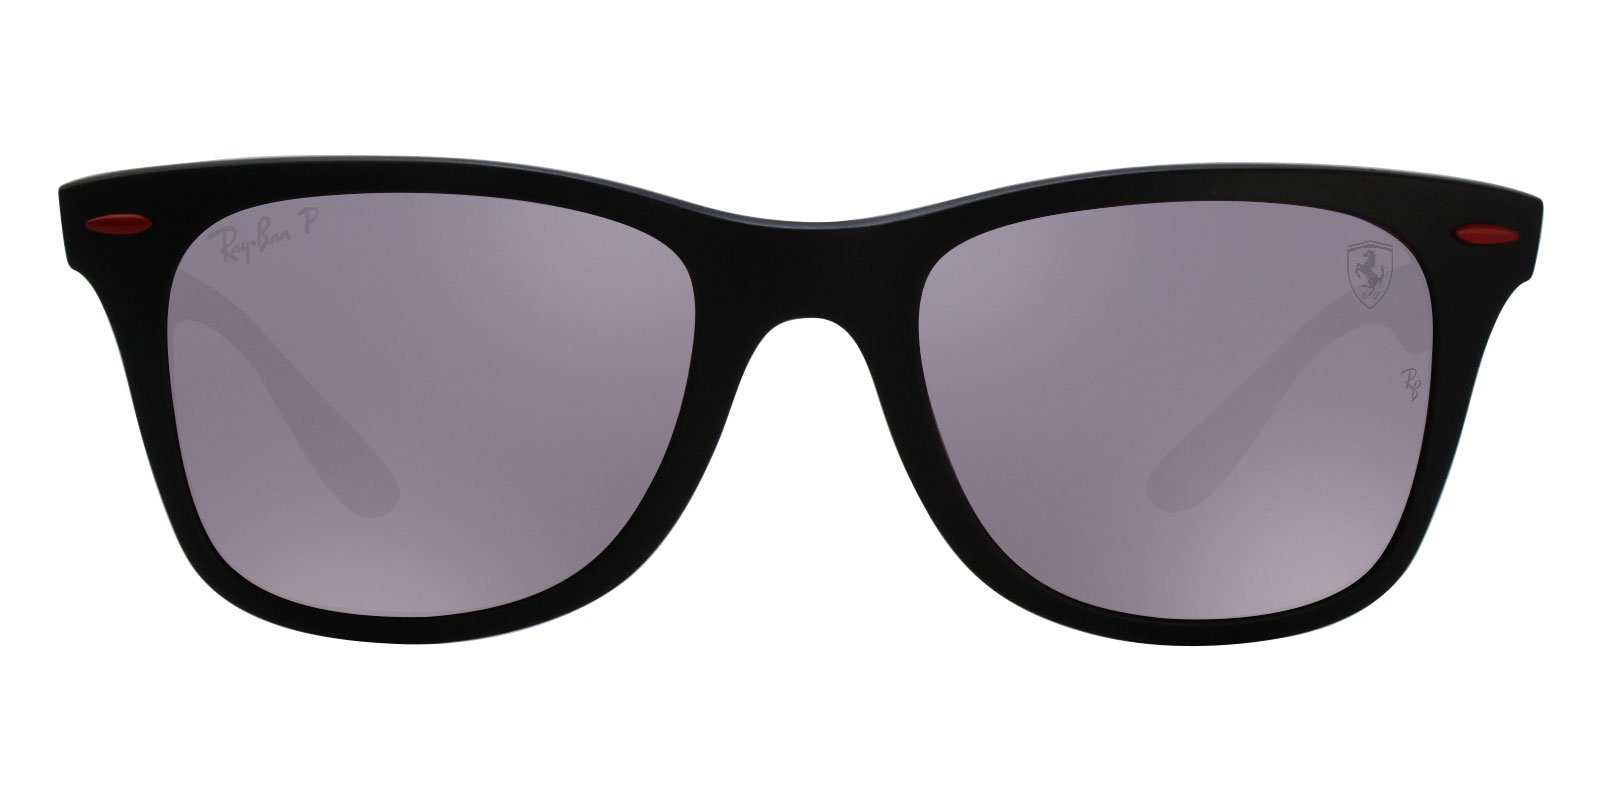 Ray Ban - RB4195M Matte Black Wayfarer Unisex Sunglasses - 52mm-Sunglasses-Designer Eyes